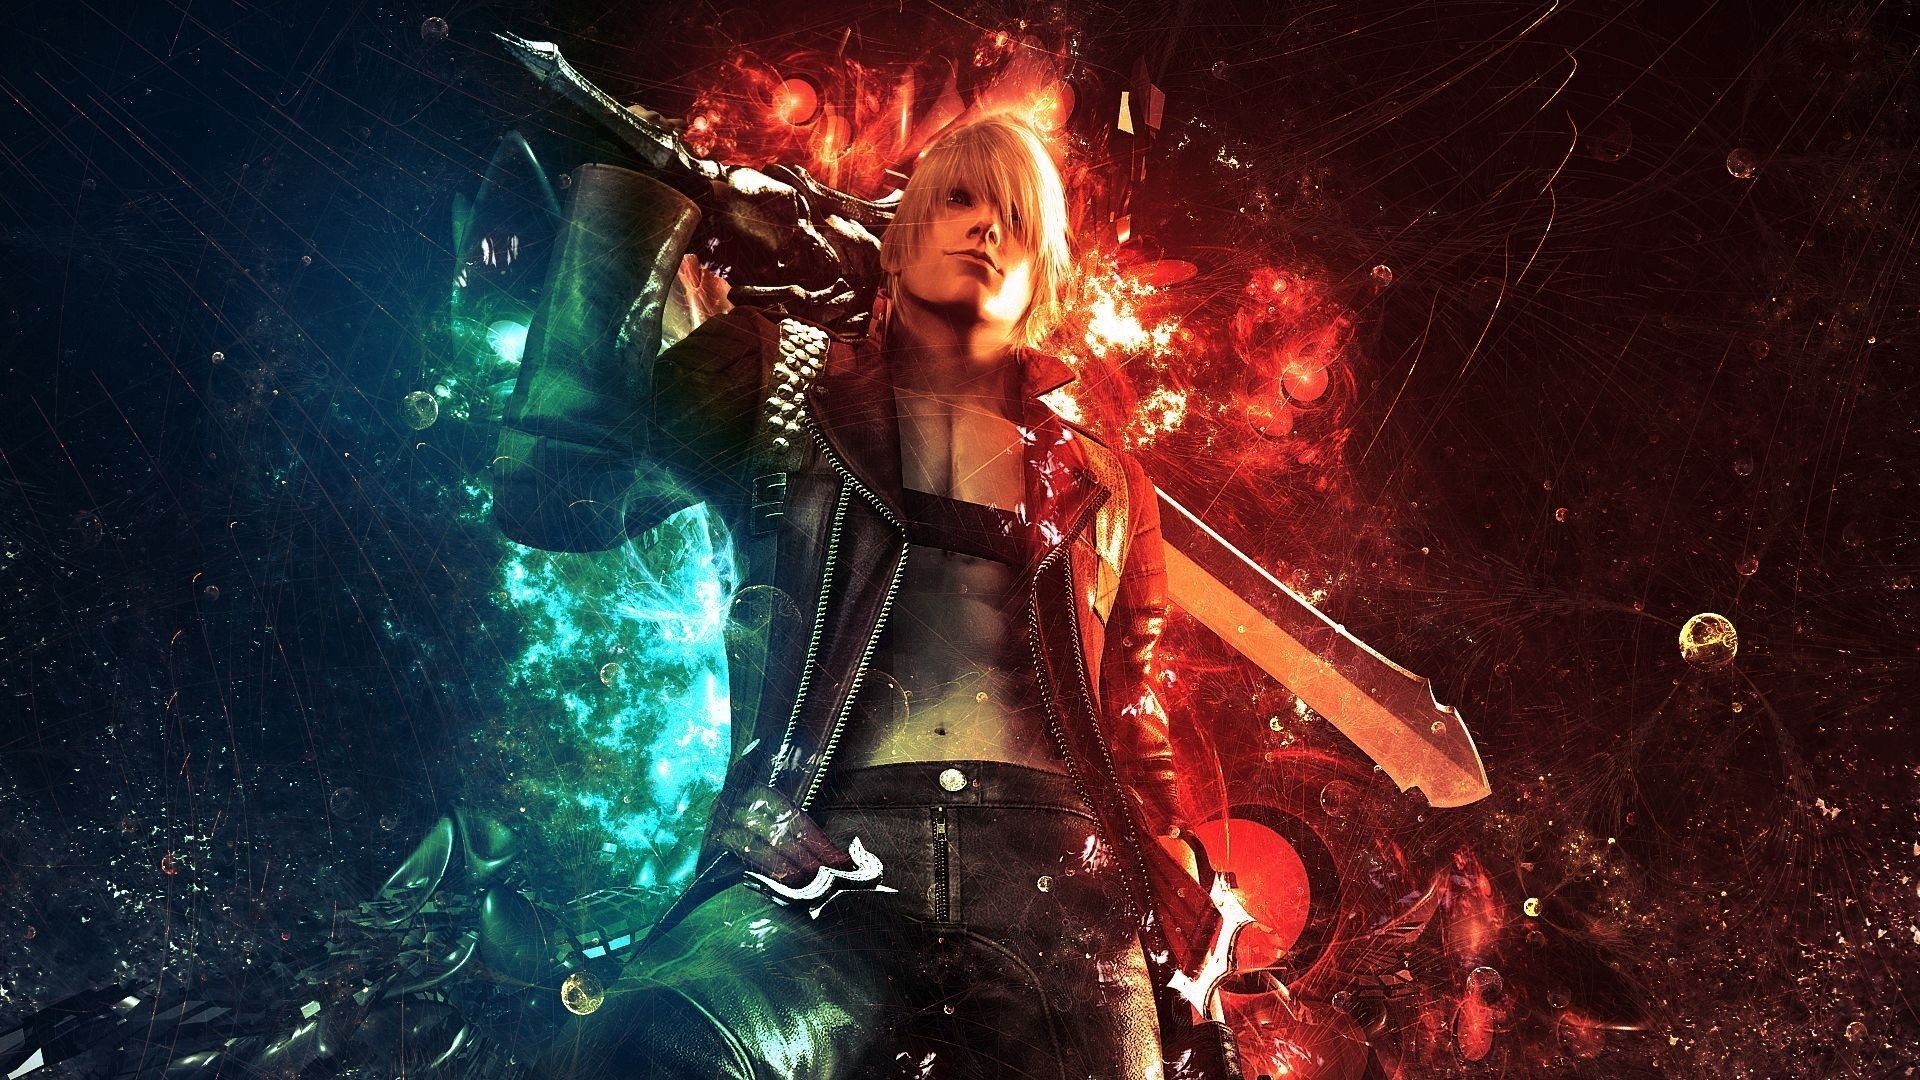 Dmc wallpaper 11348 pc en - Devil may cry hd pics ...